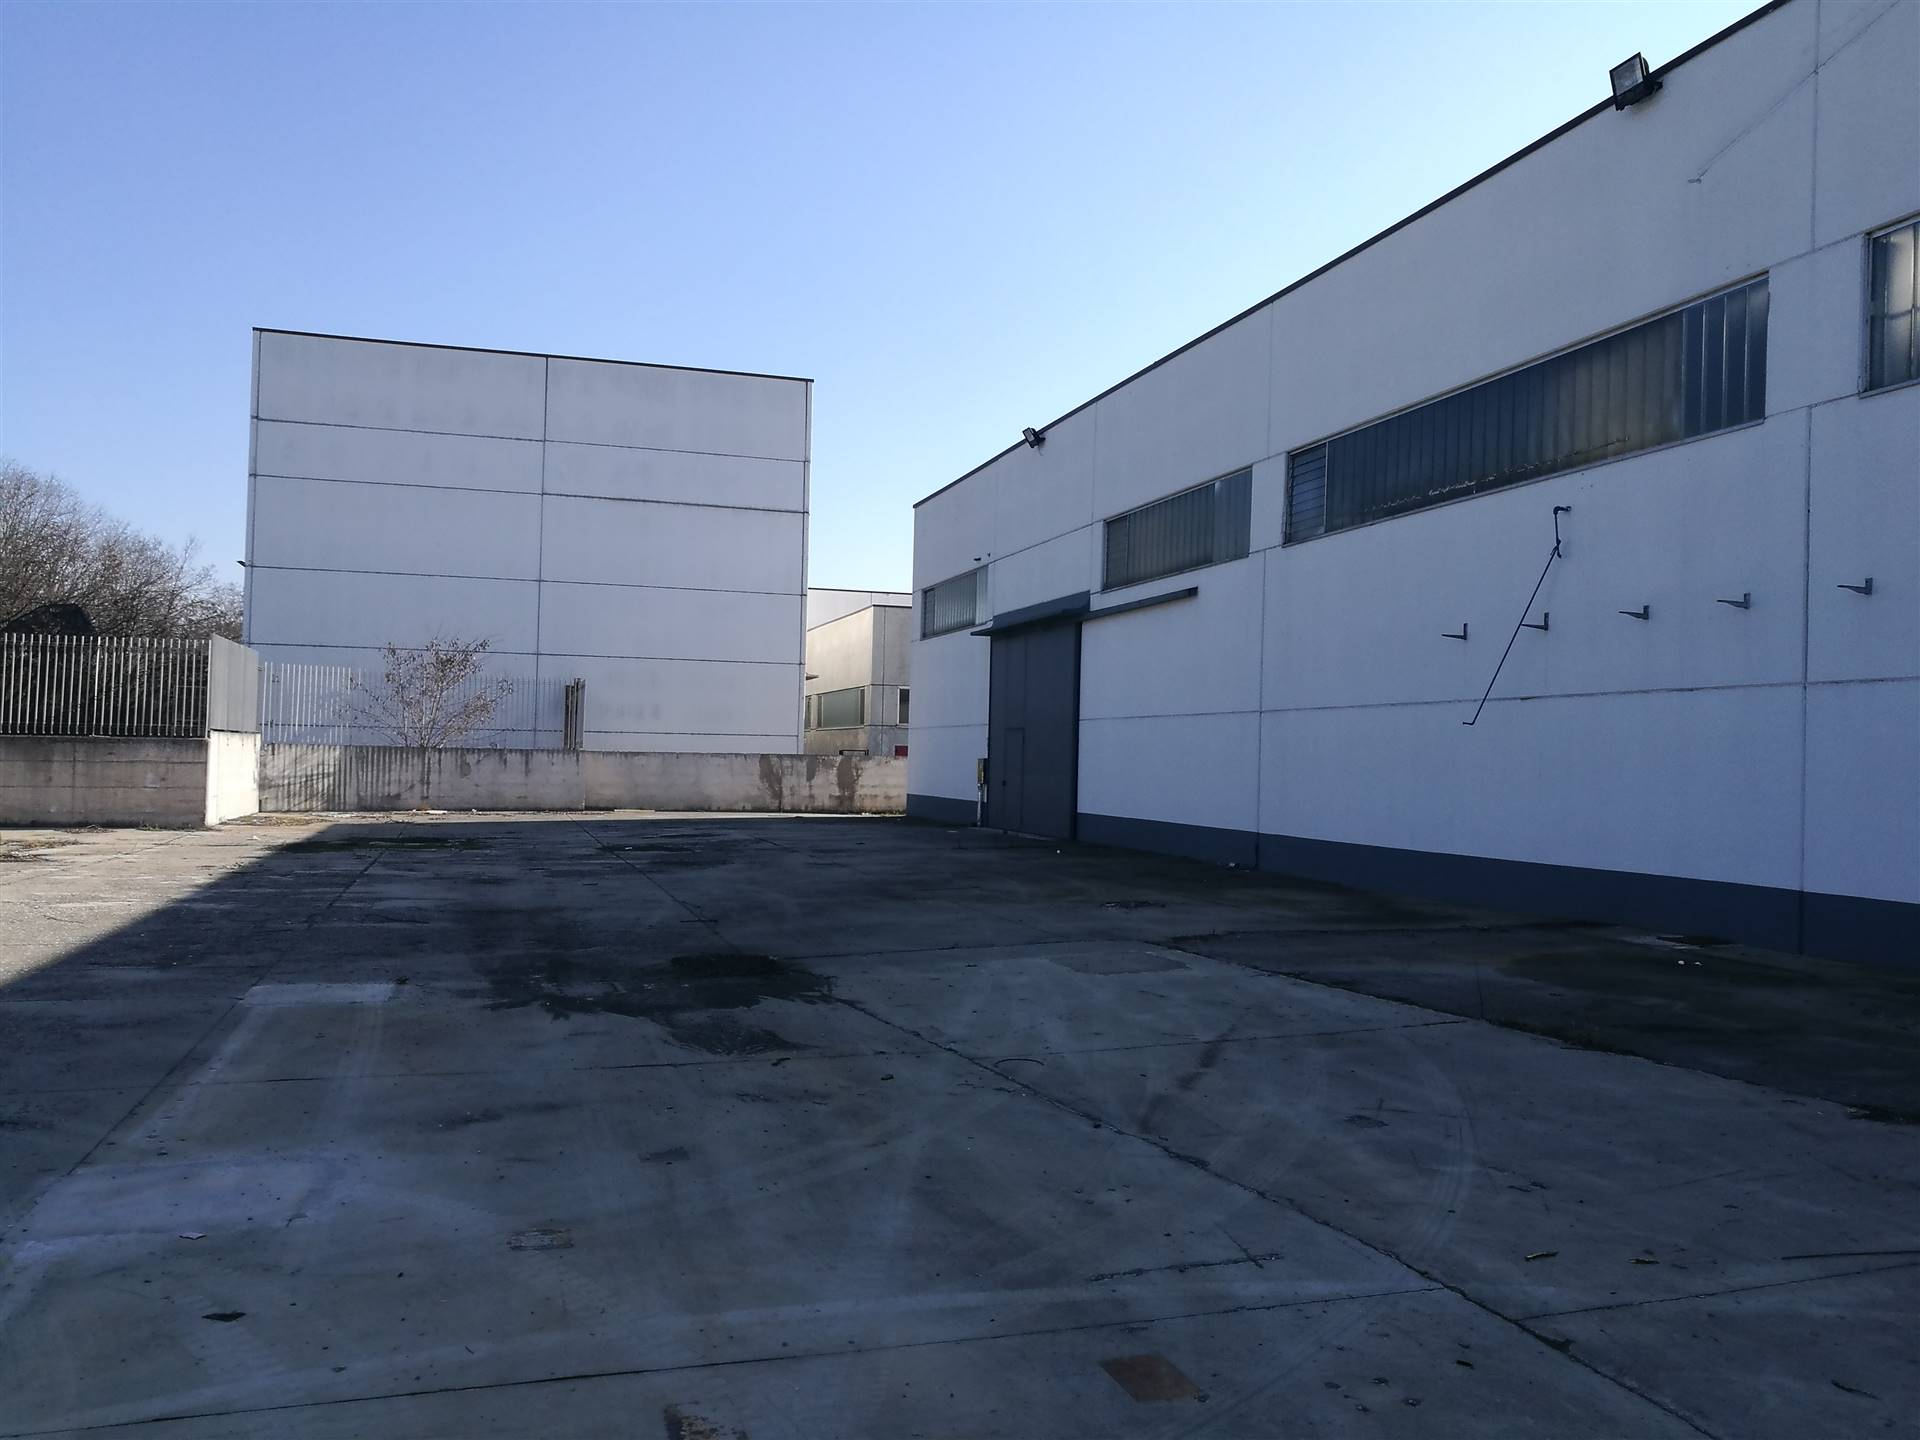 Capannone industriale a BASIANO